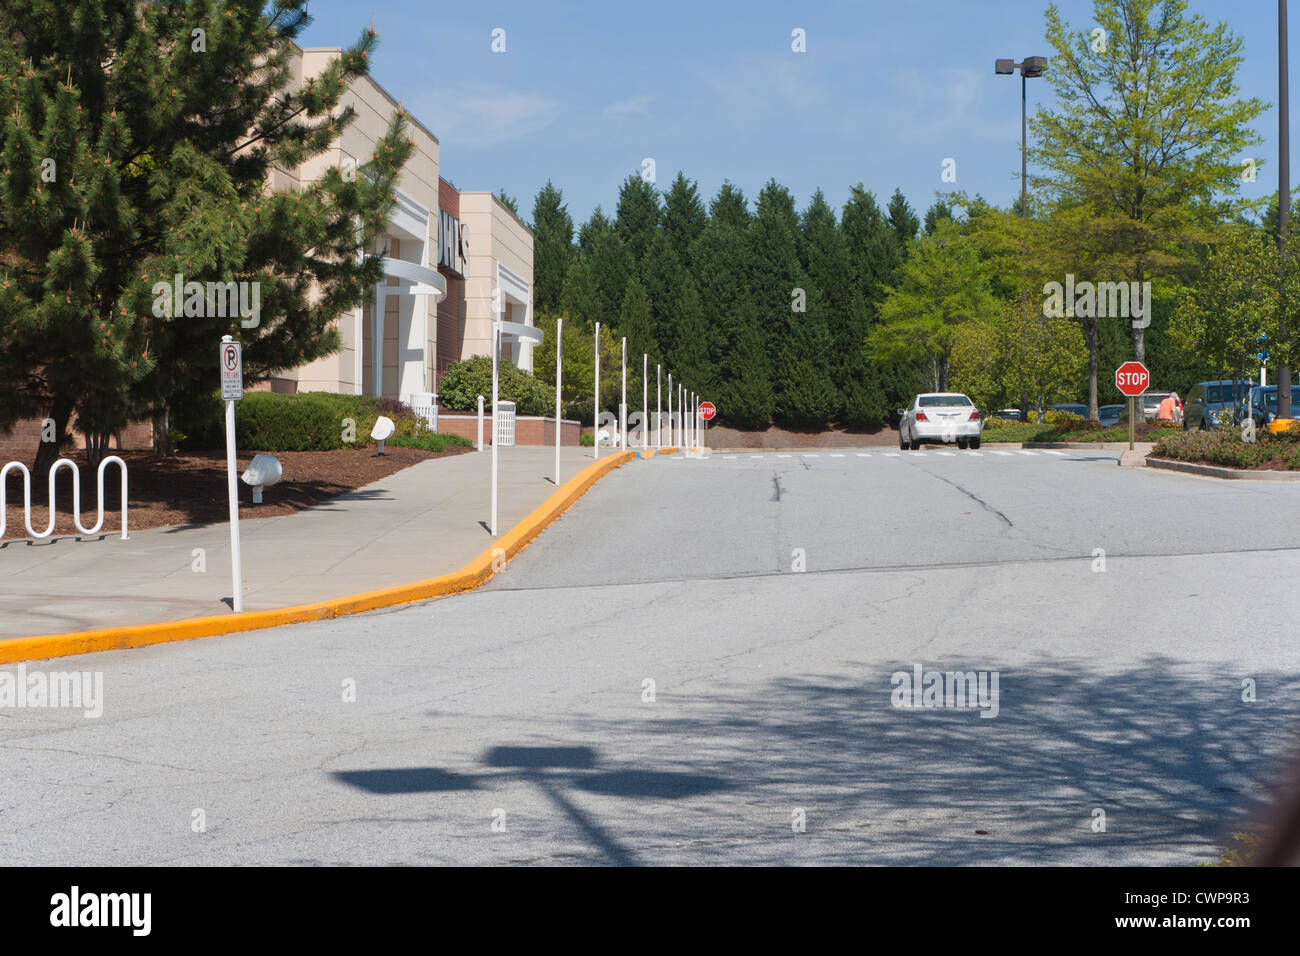 Mall parking lot in Lawrenceville Georgia one car. - Stock Image